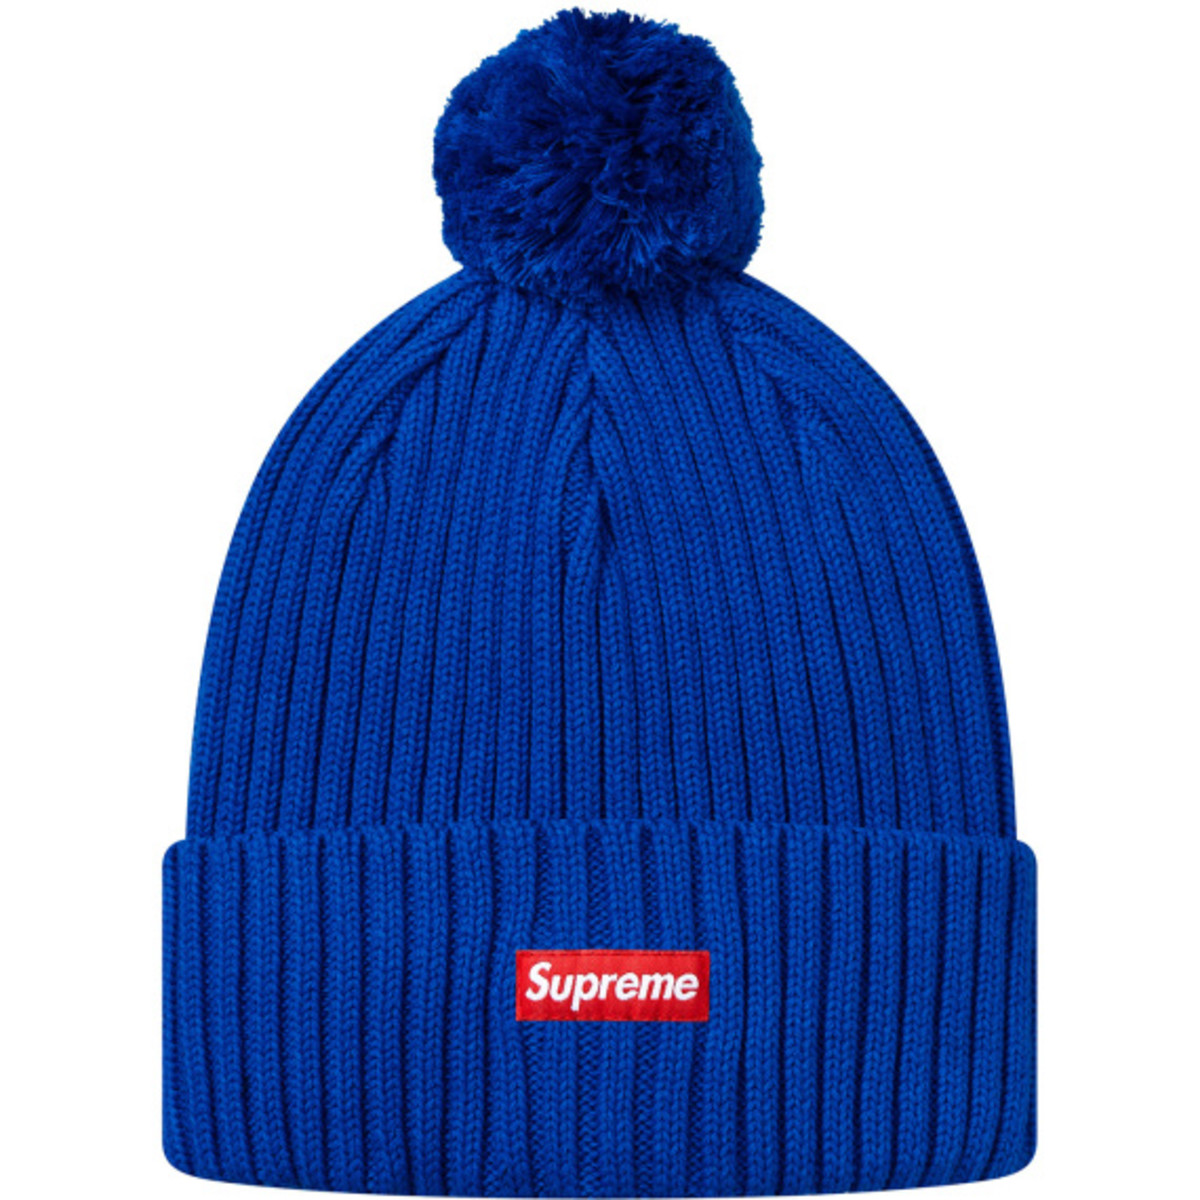 Supreme Ribbed Beanie | Available Now - 7